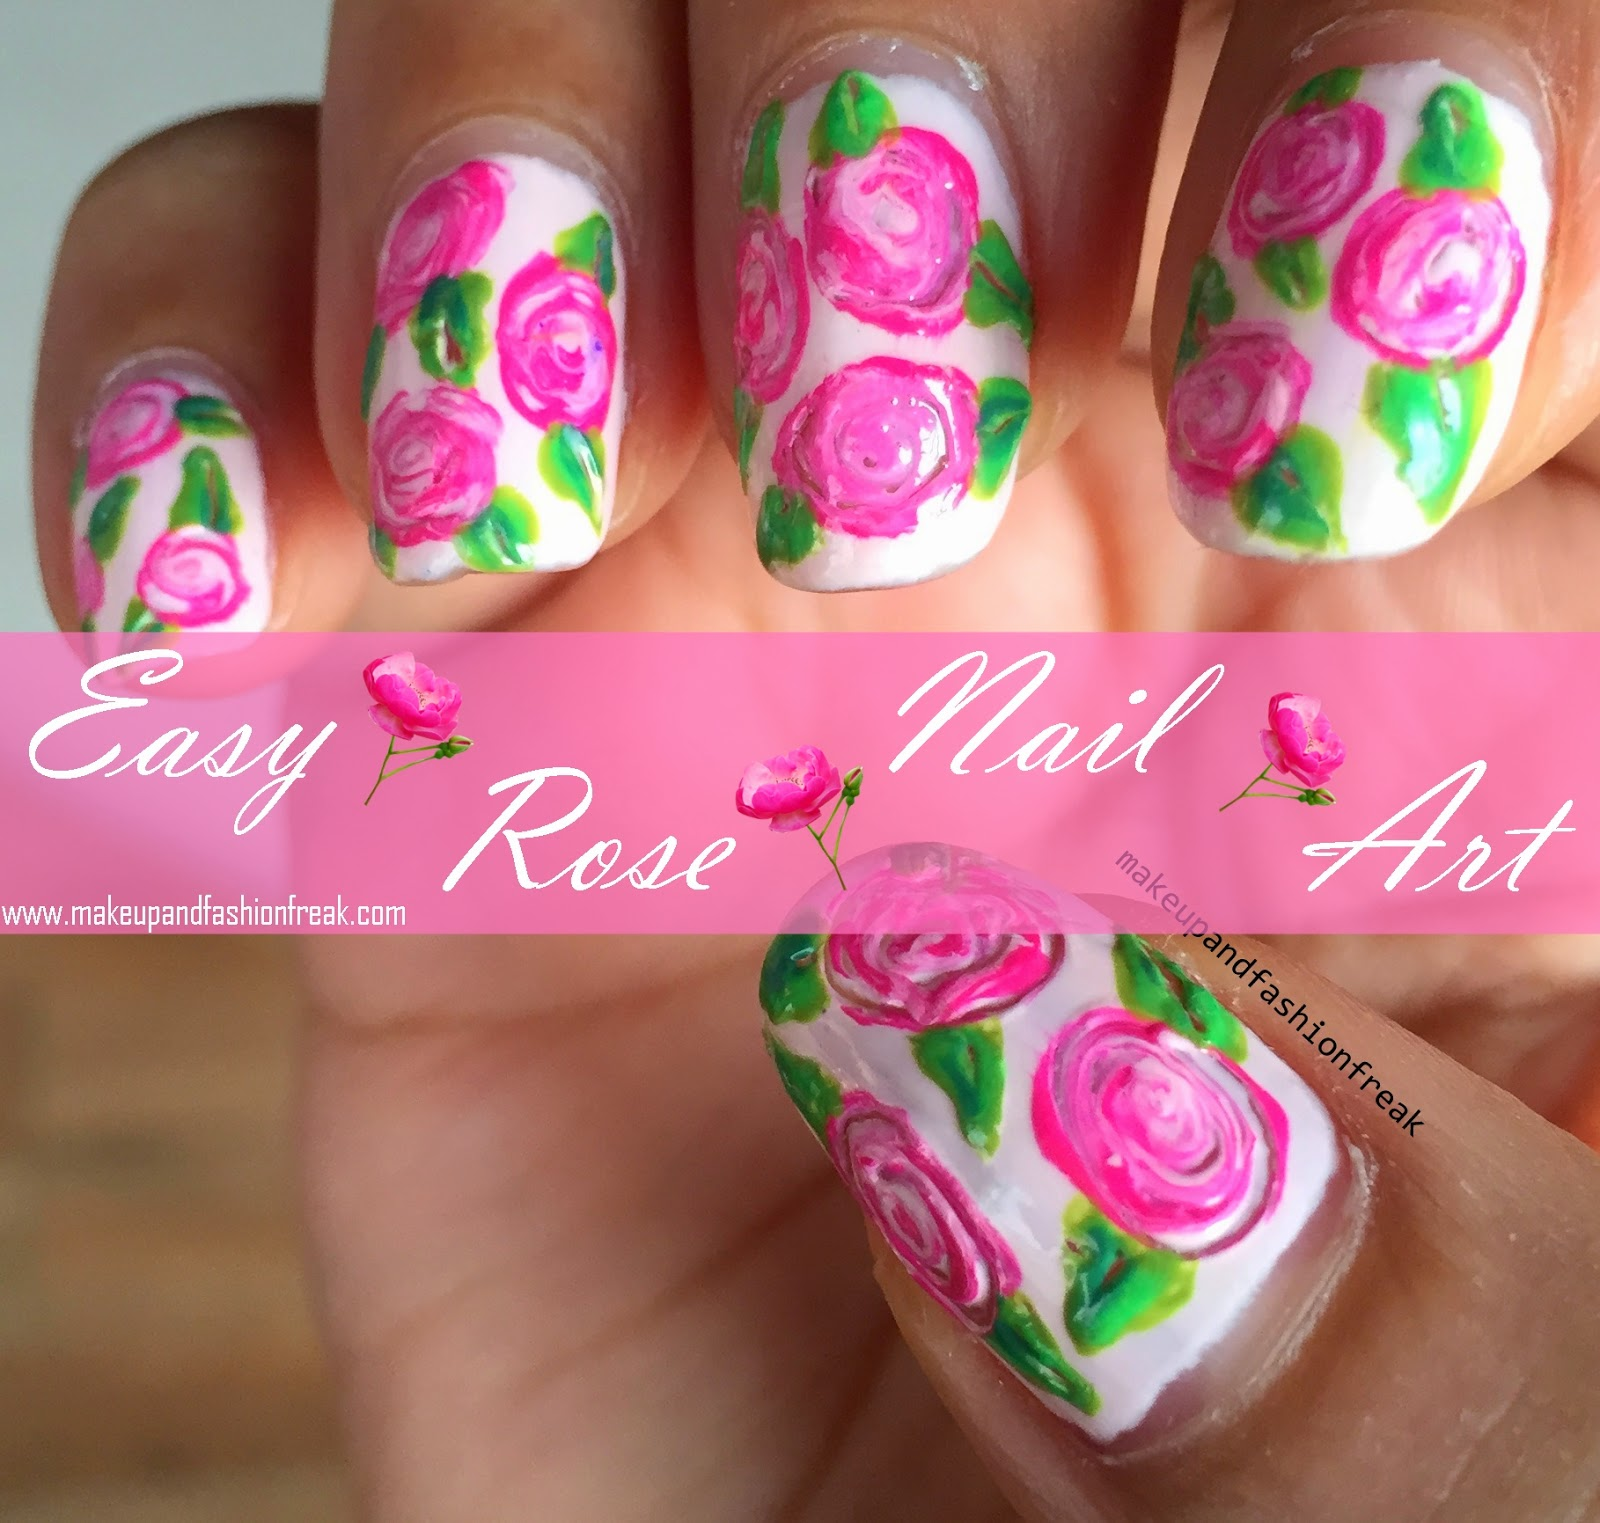 Makeup And Fashion Freak Easy Freehand Rose Nail Art Picture